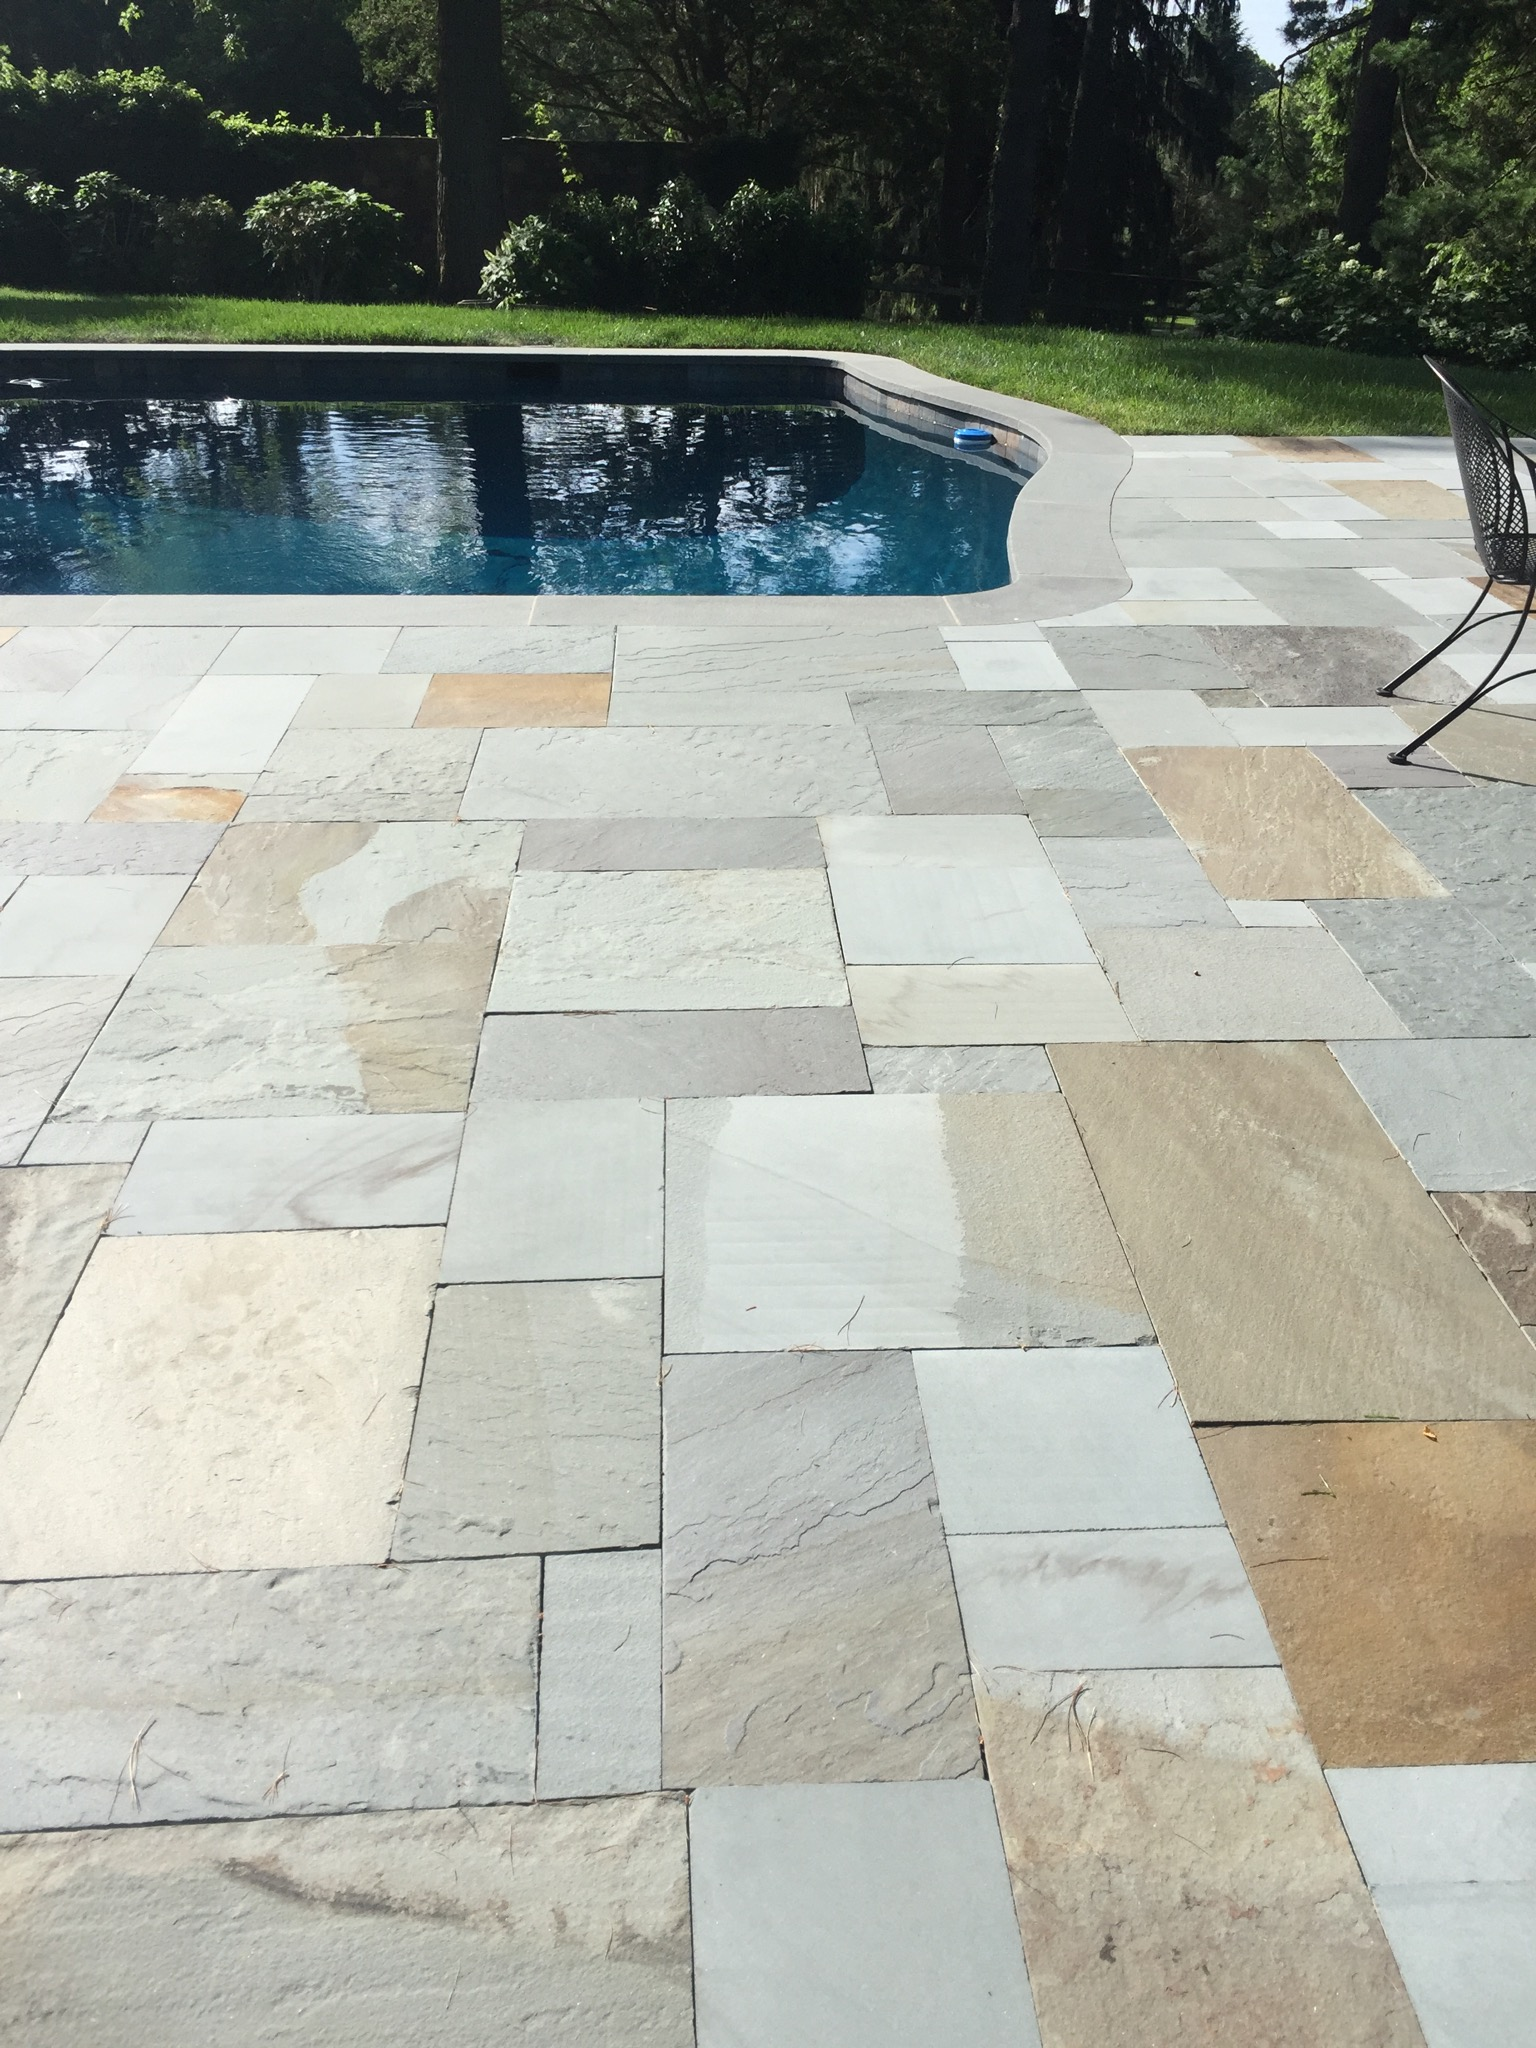 Pennsylvania Blue Stone Patio around pool